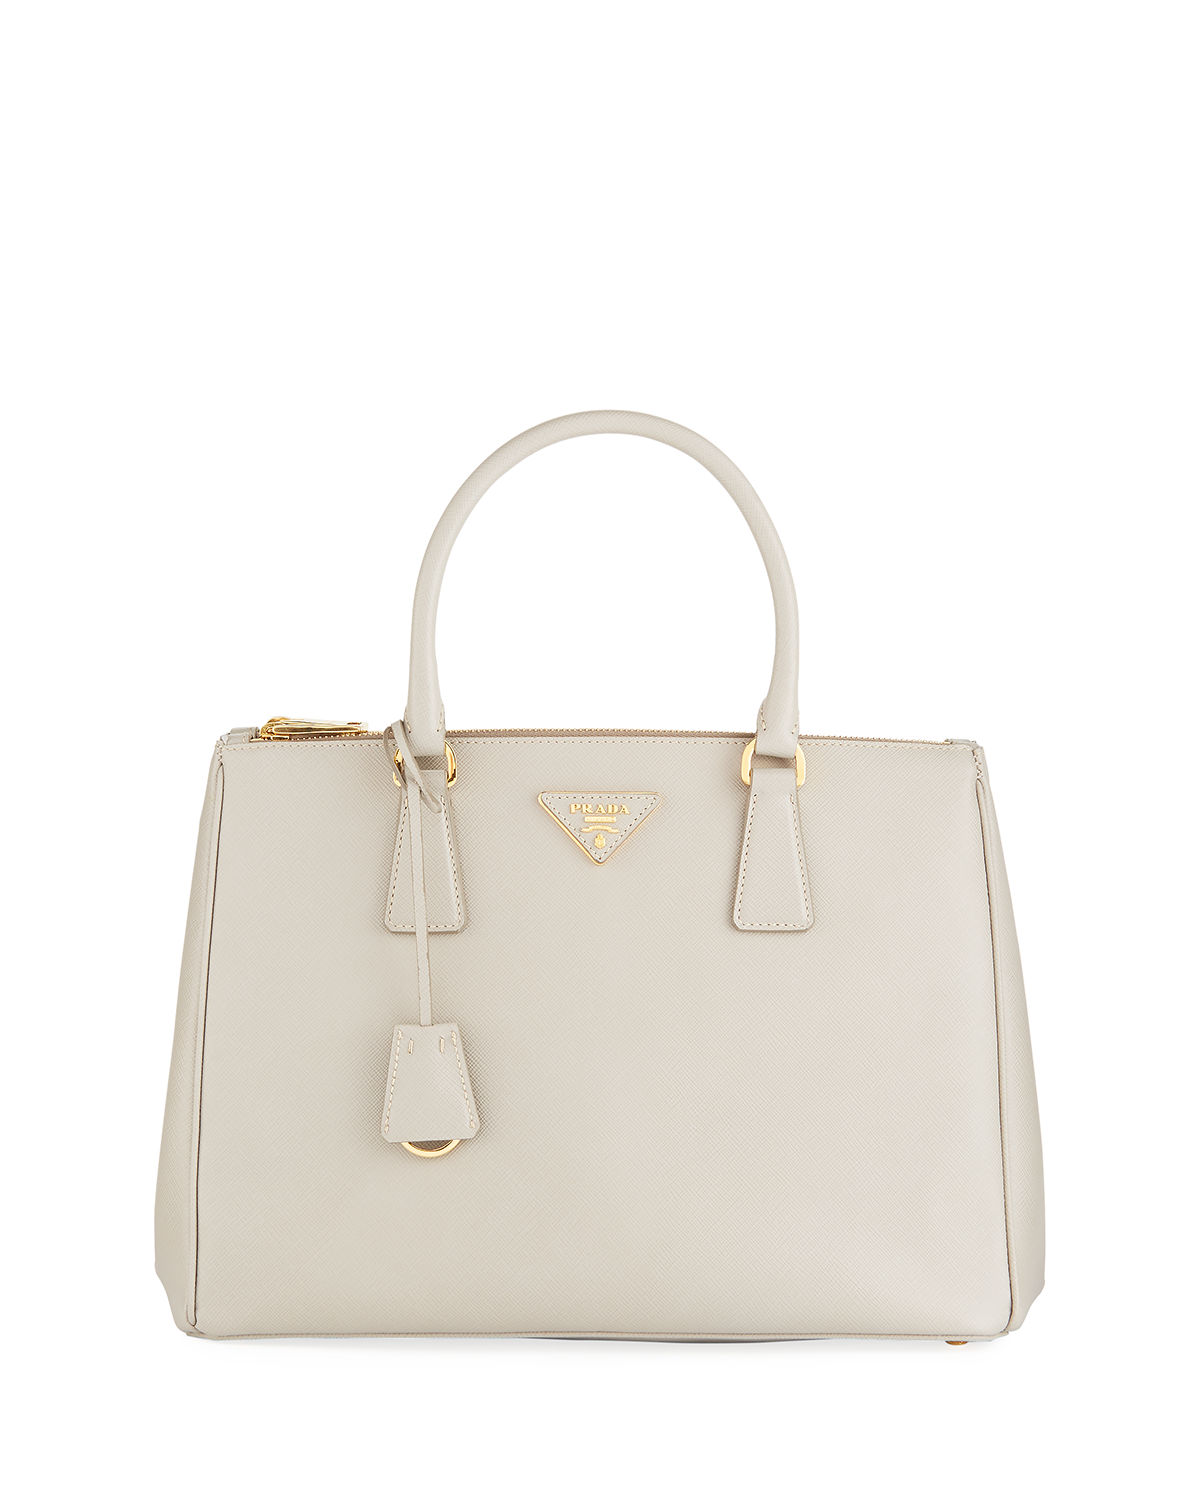 5097ec27ca14a Prada Galleria Medium Saffiano Tote Bag